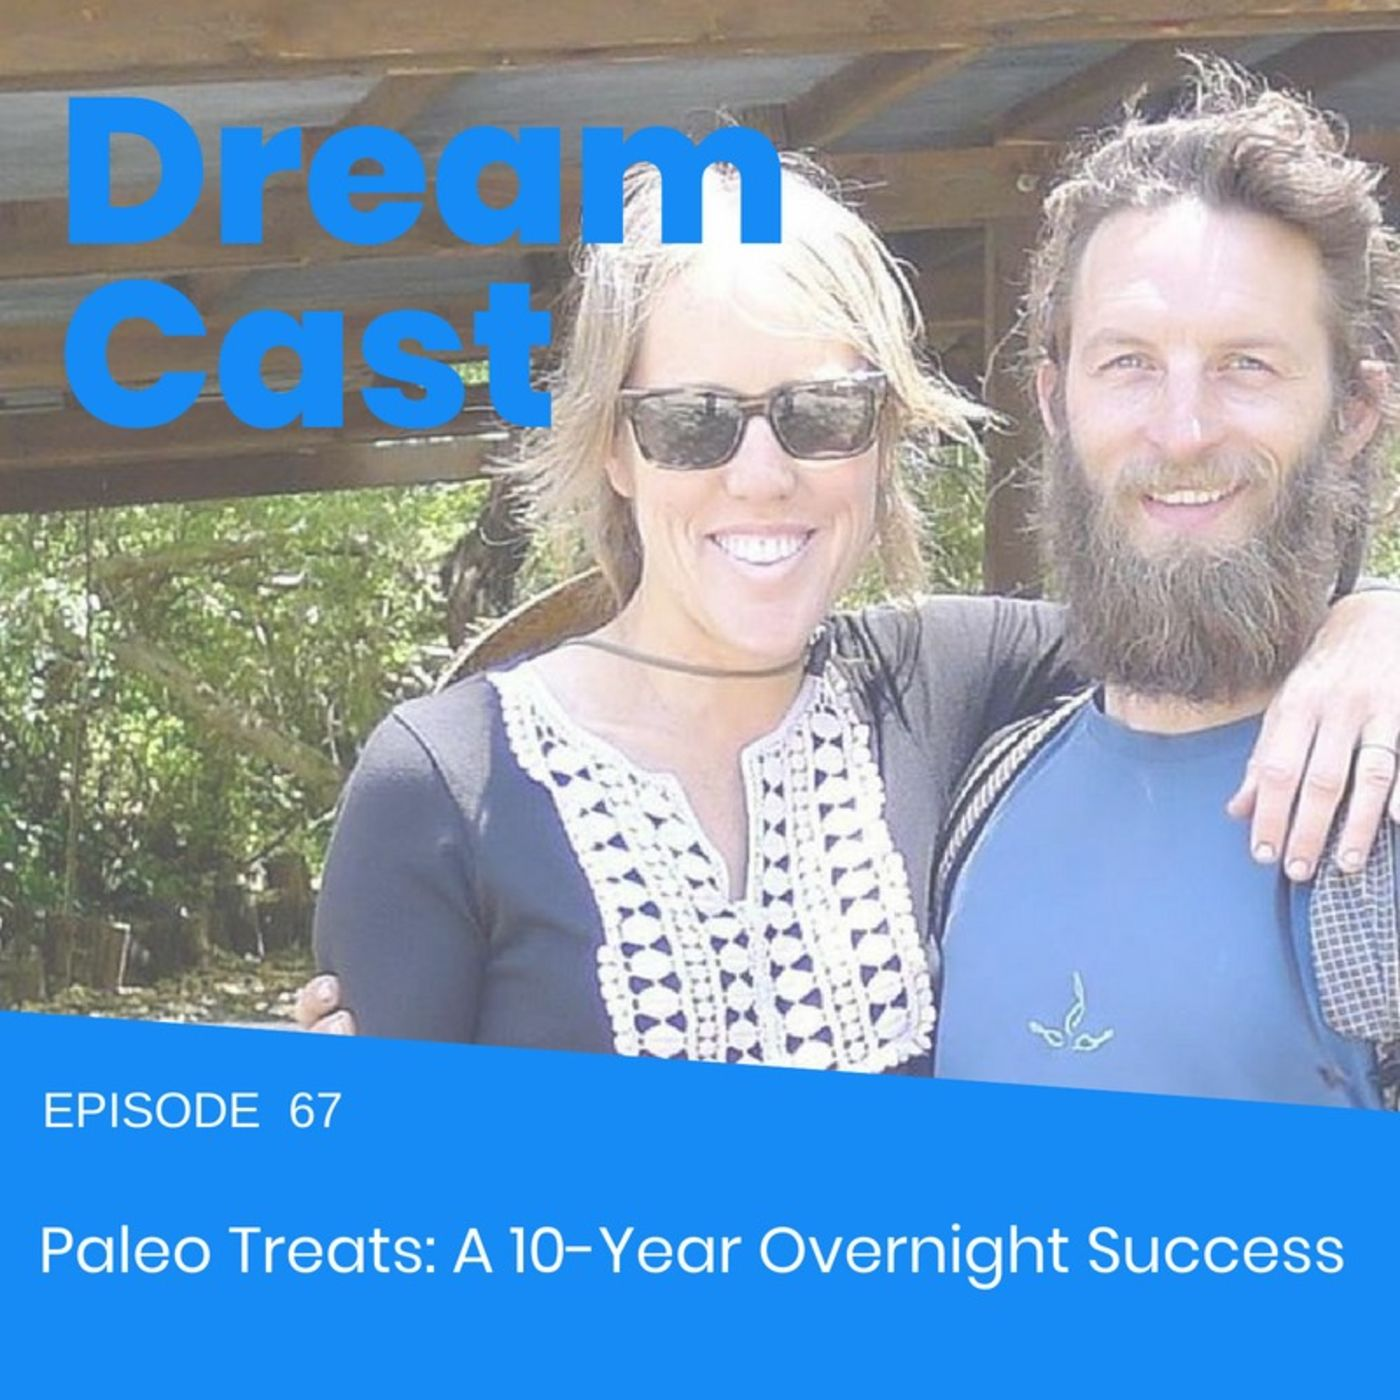 Episode 67- Paleo Treats: A 10-Year Overnight Success